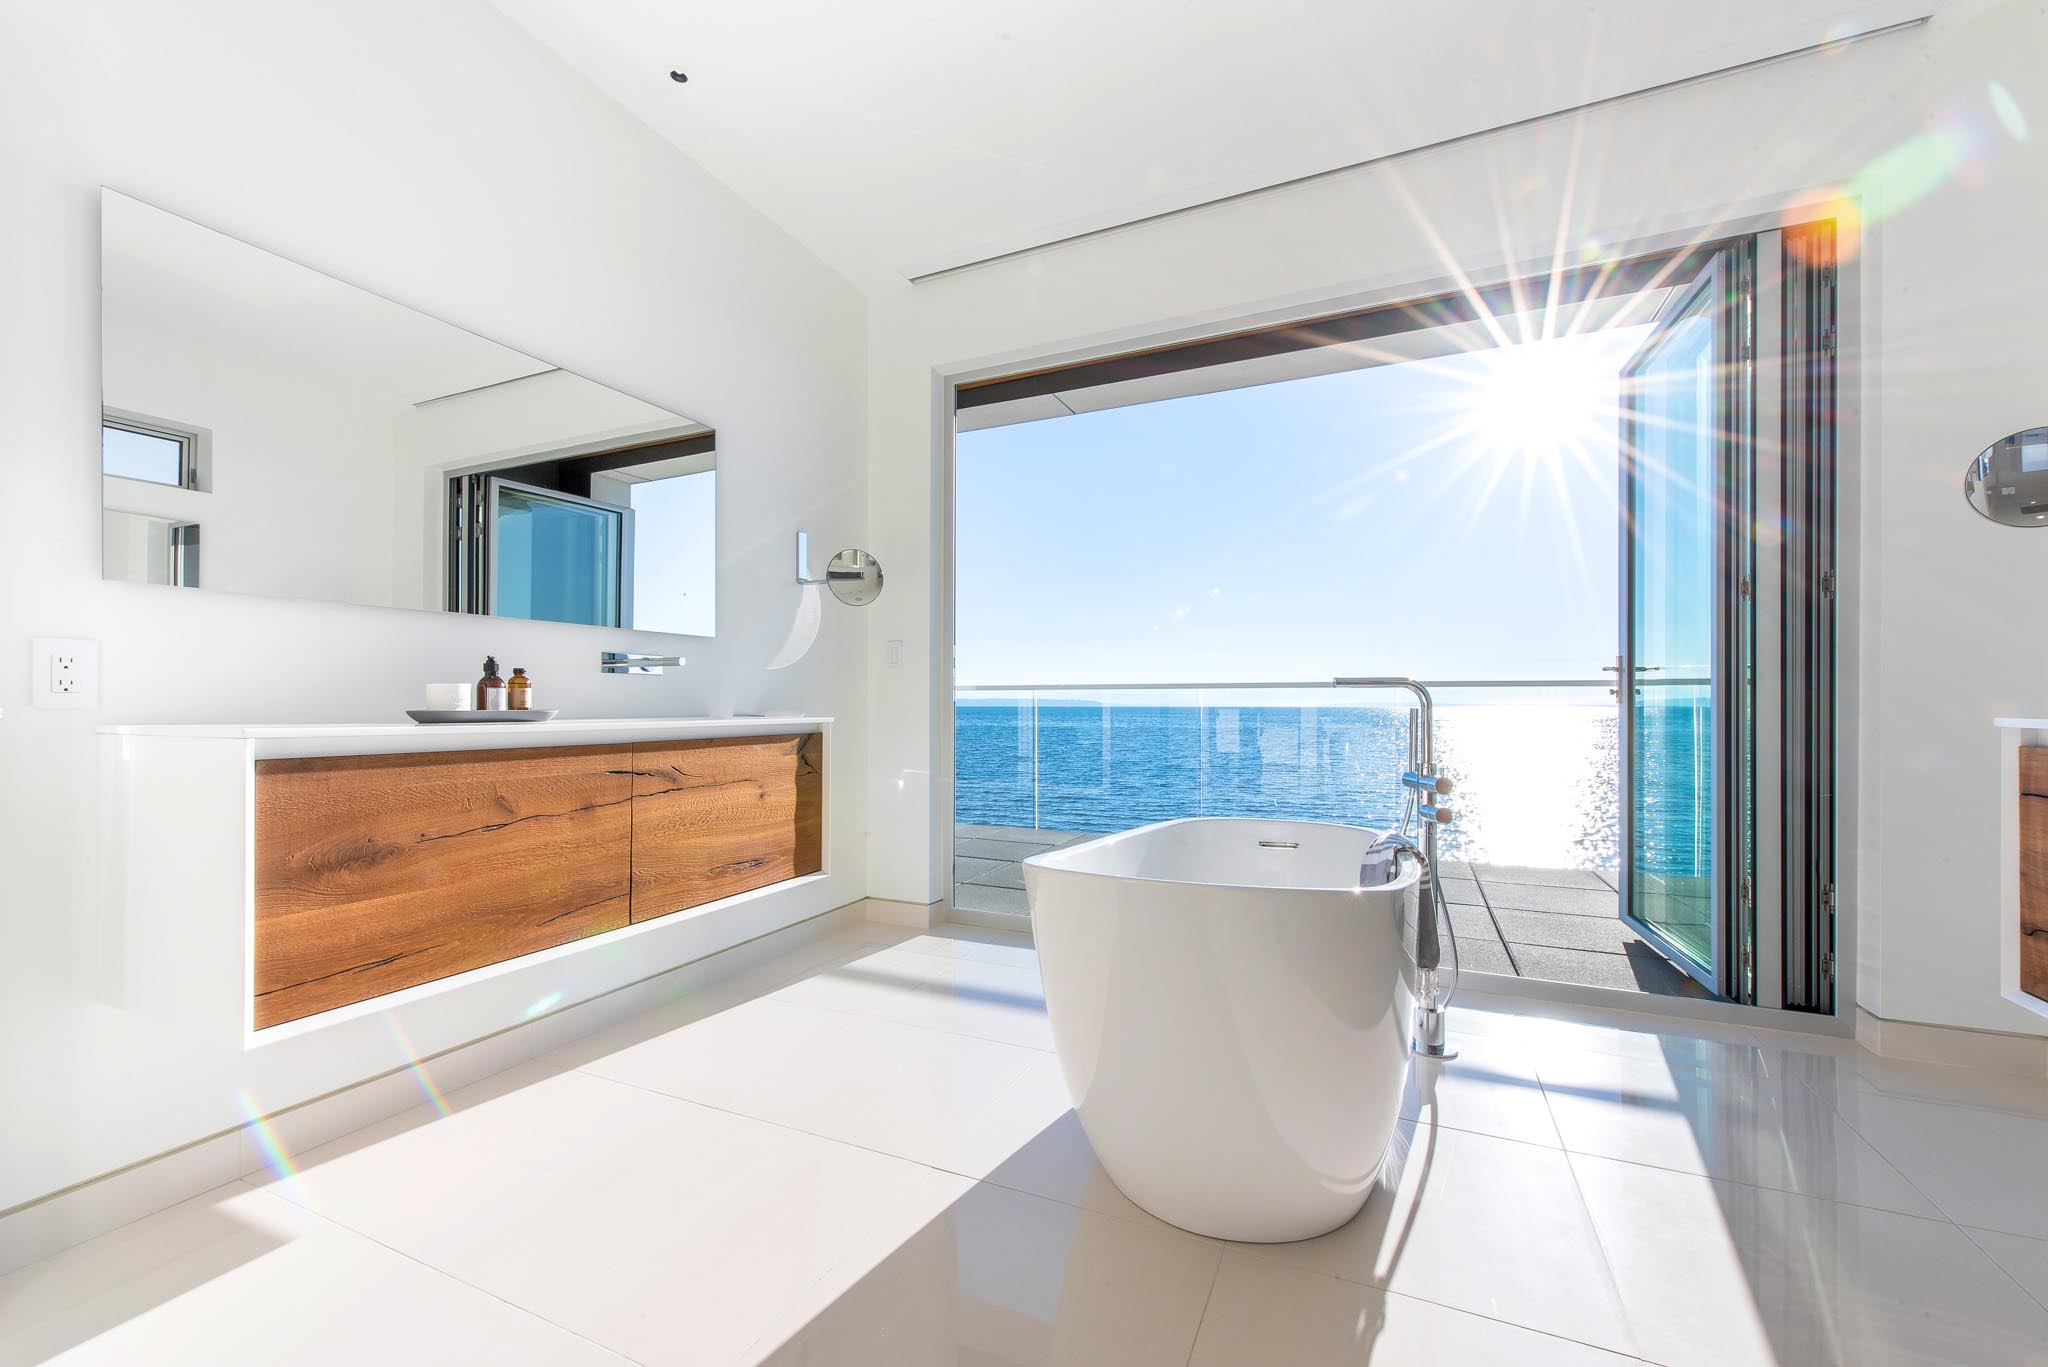 freestanding bathtub in front of open folding glass wall in oceanfront home